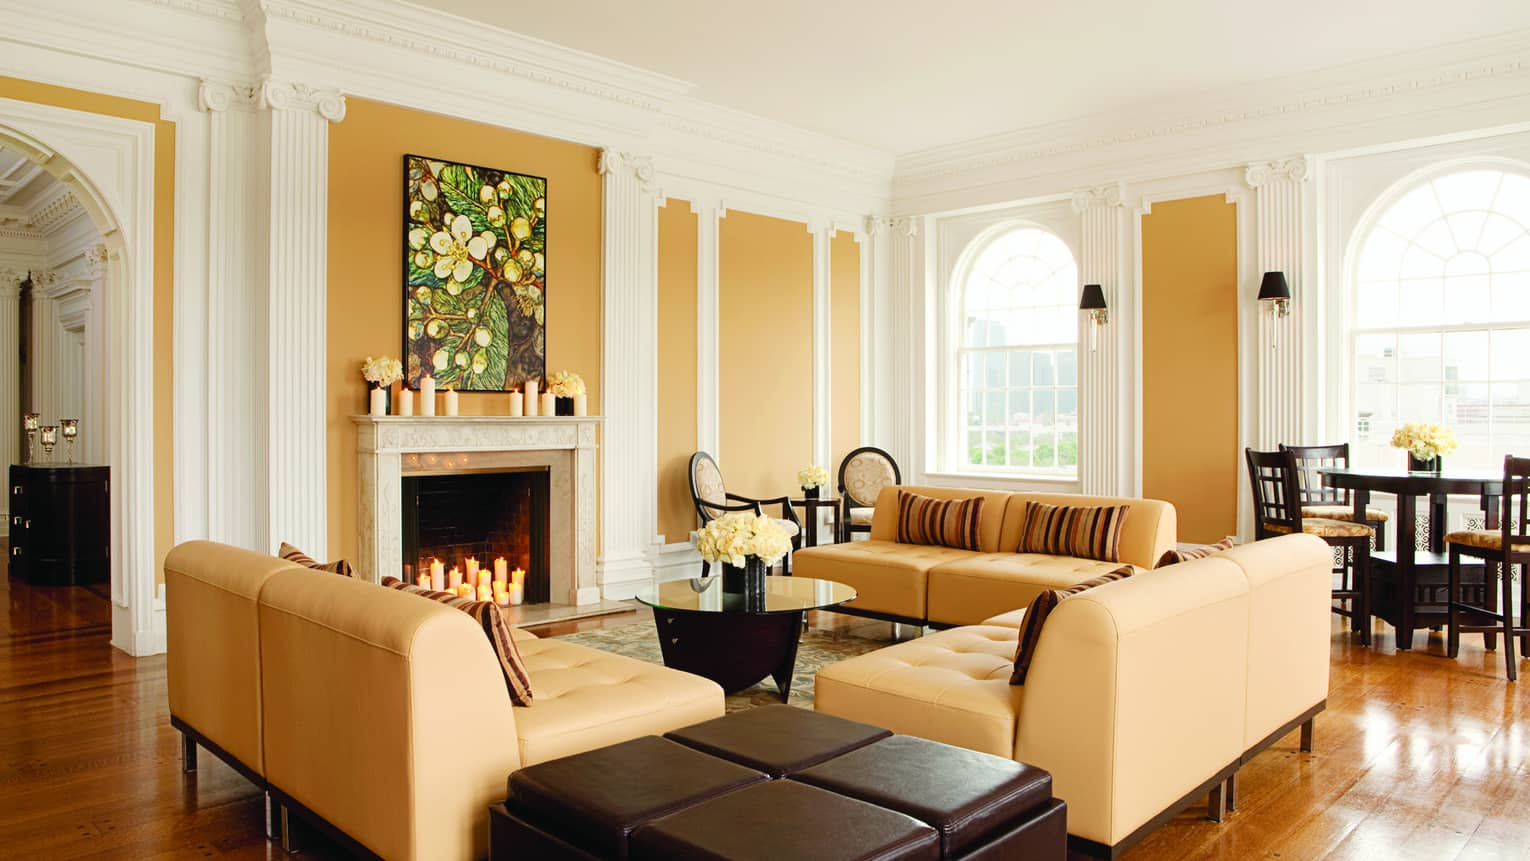 Tan sofas around fireplace in modern Royal Suite Living Room